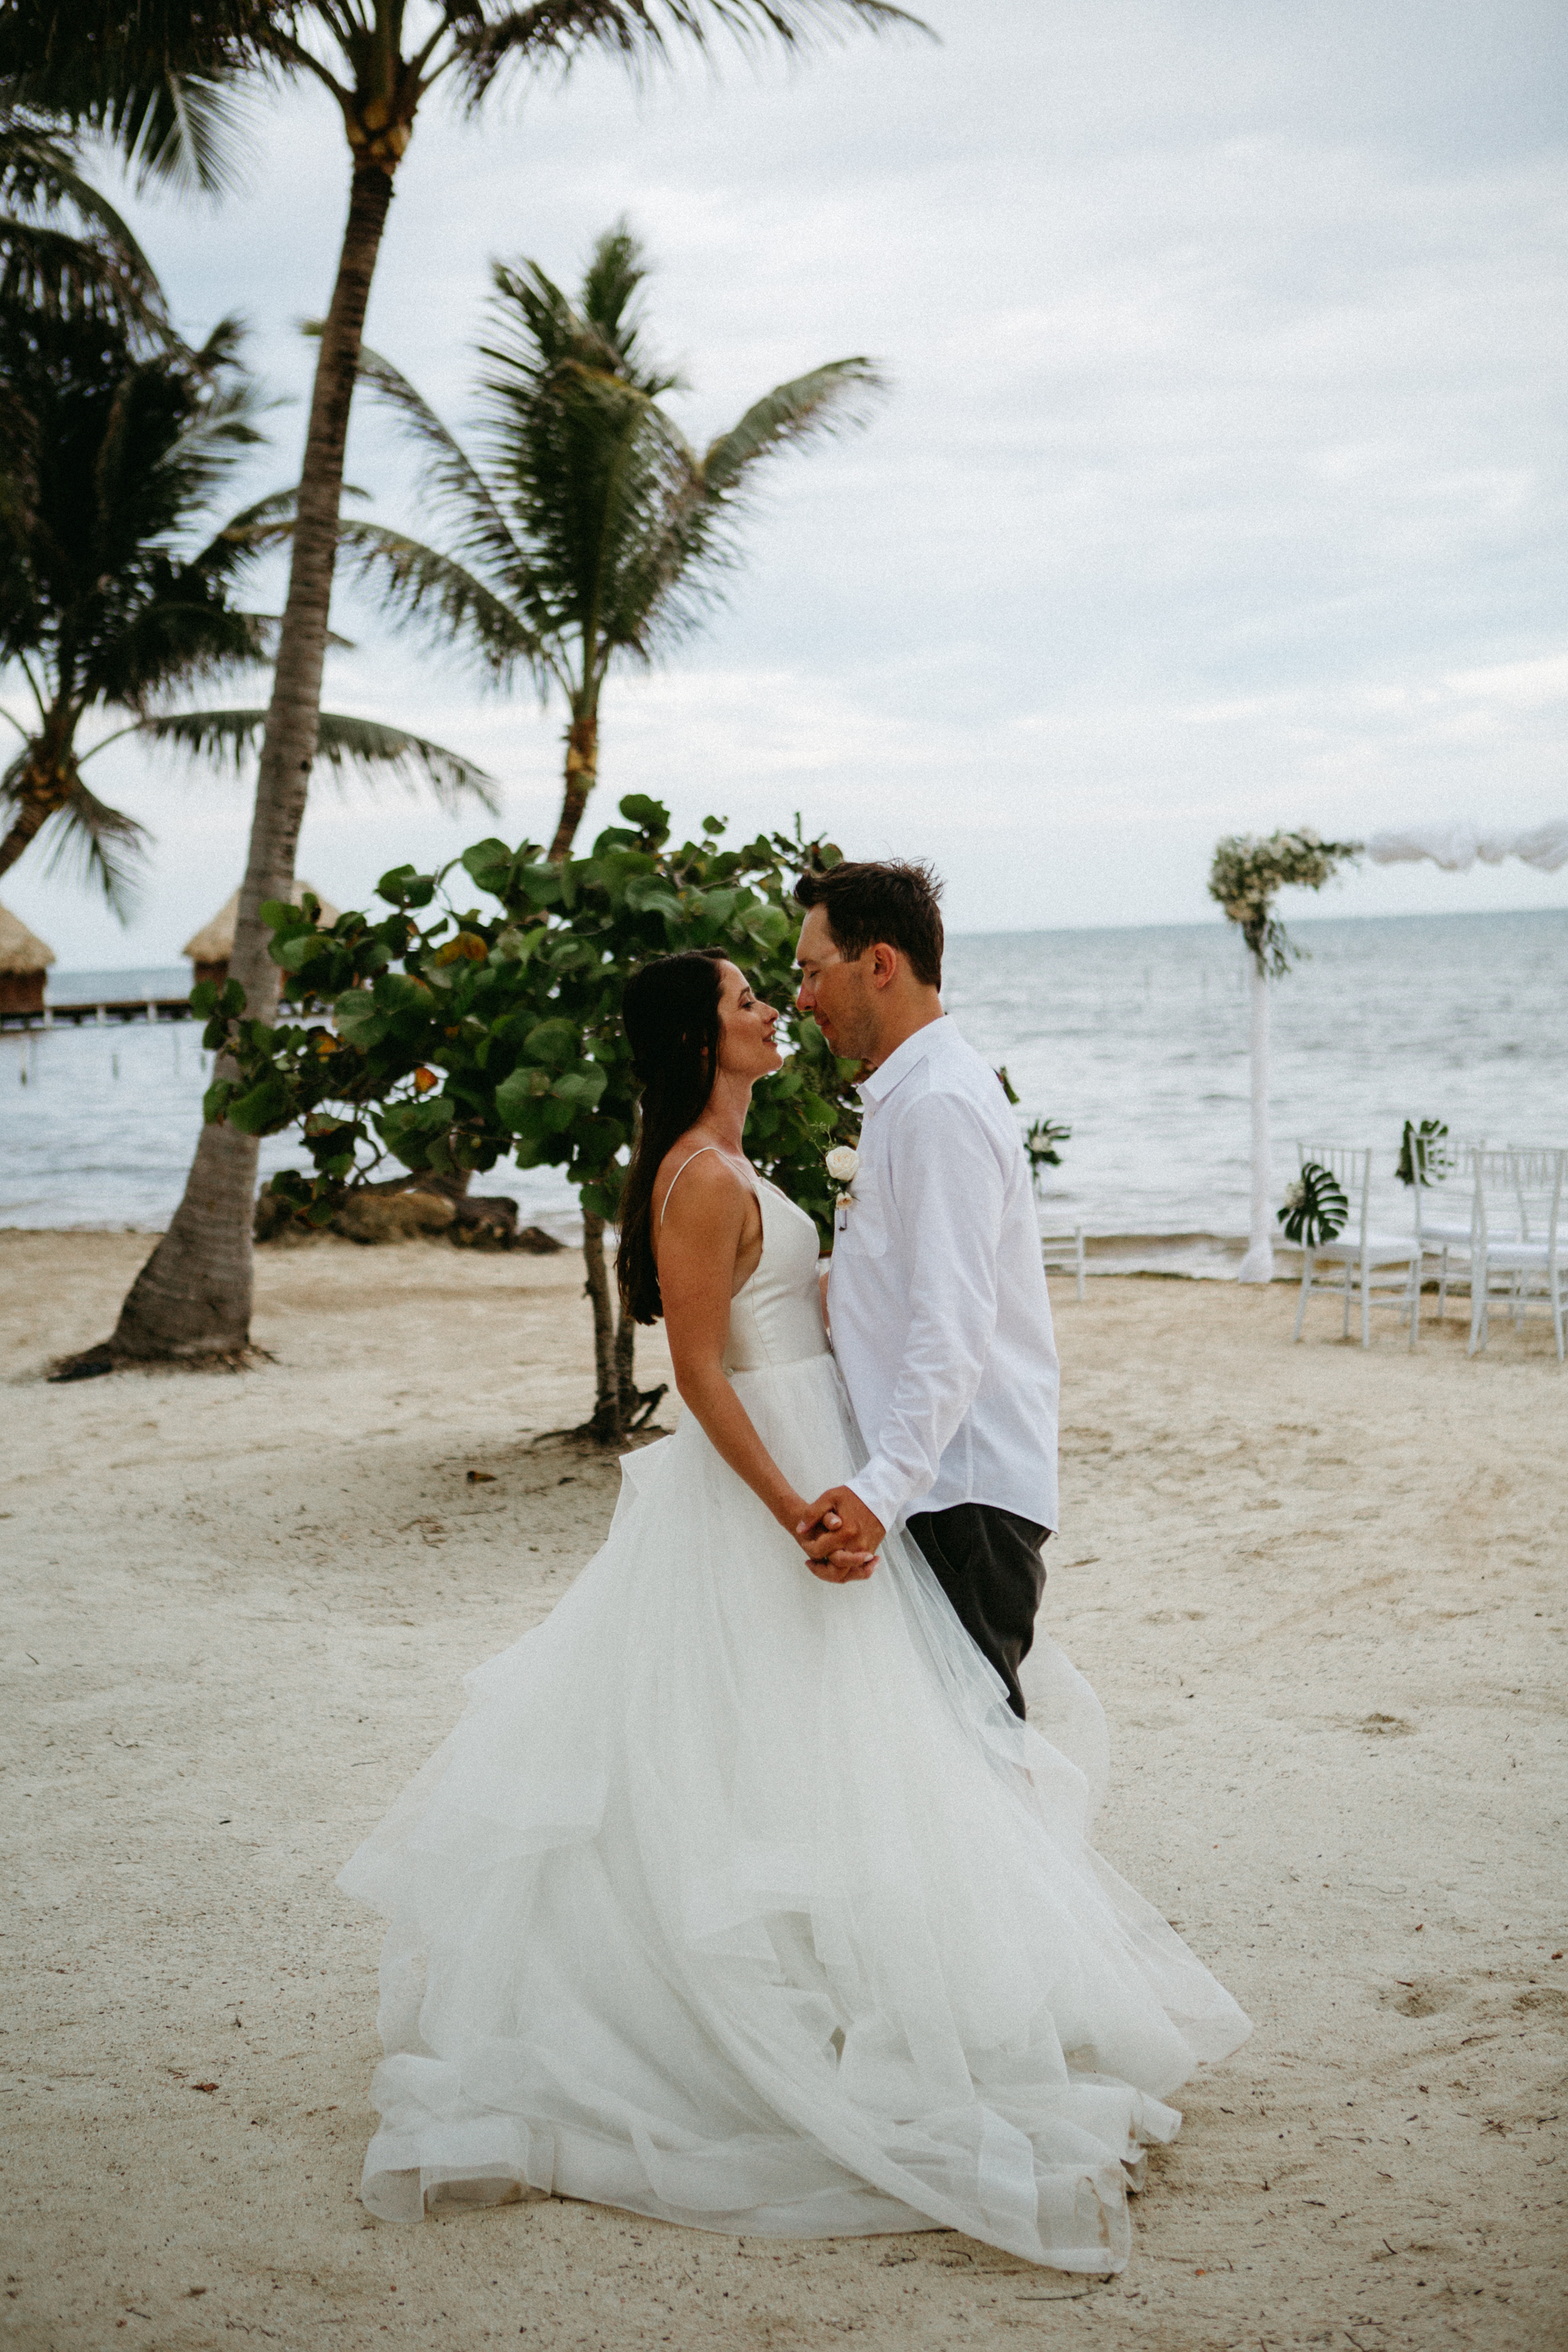 san-pescador-belize-wedding-christinemariephoto-j-k-112.jpg